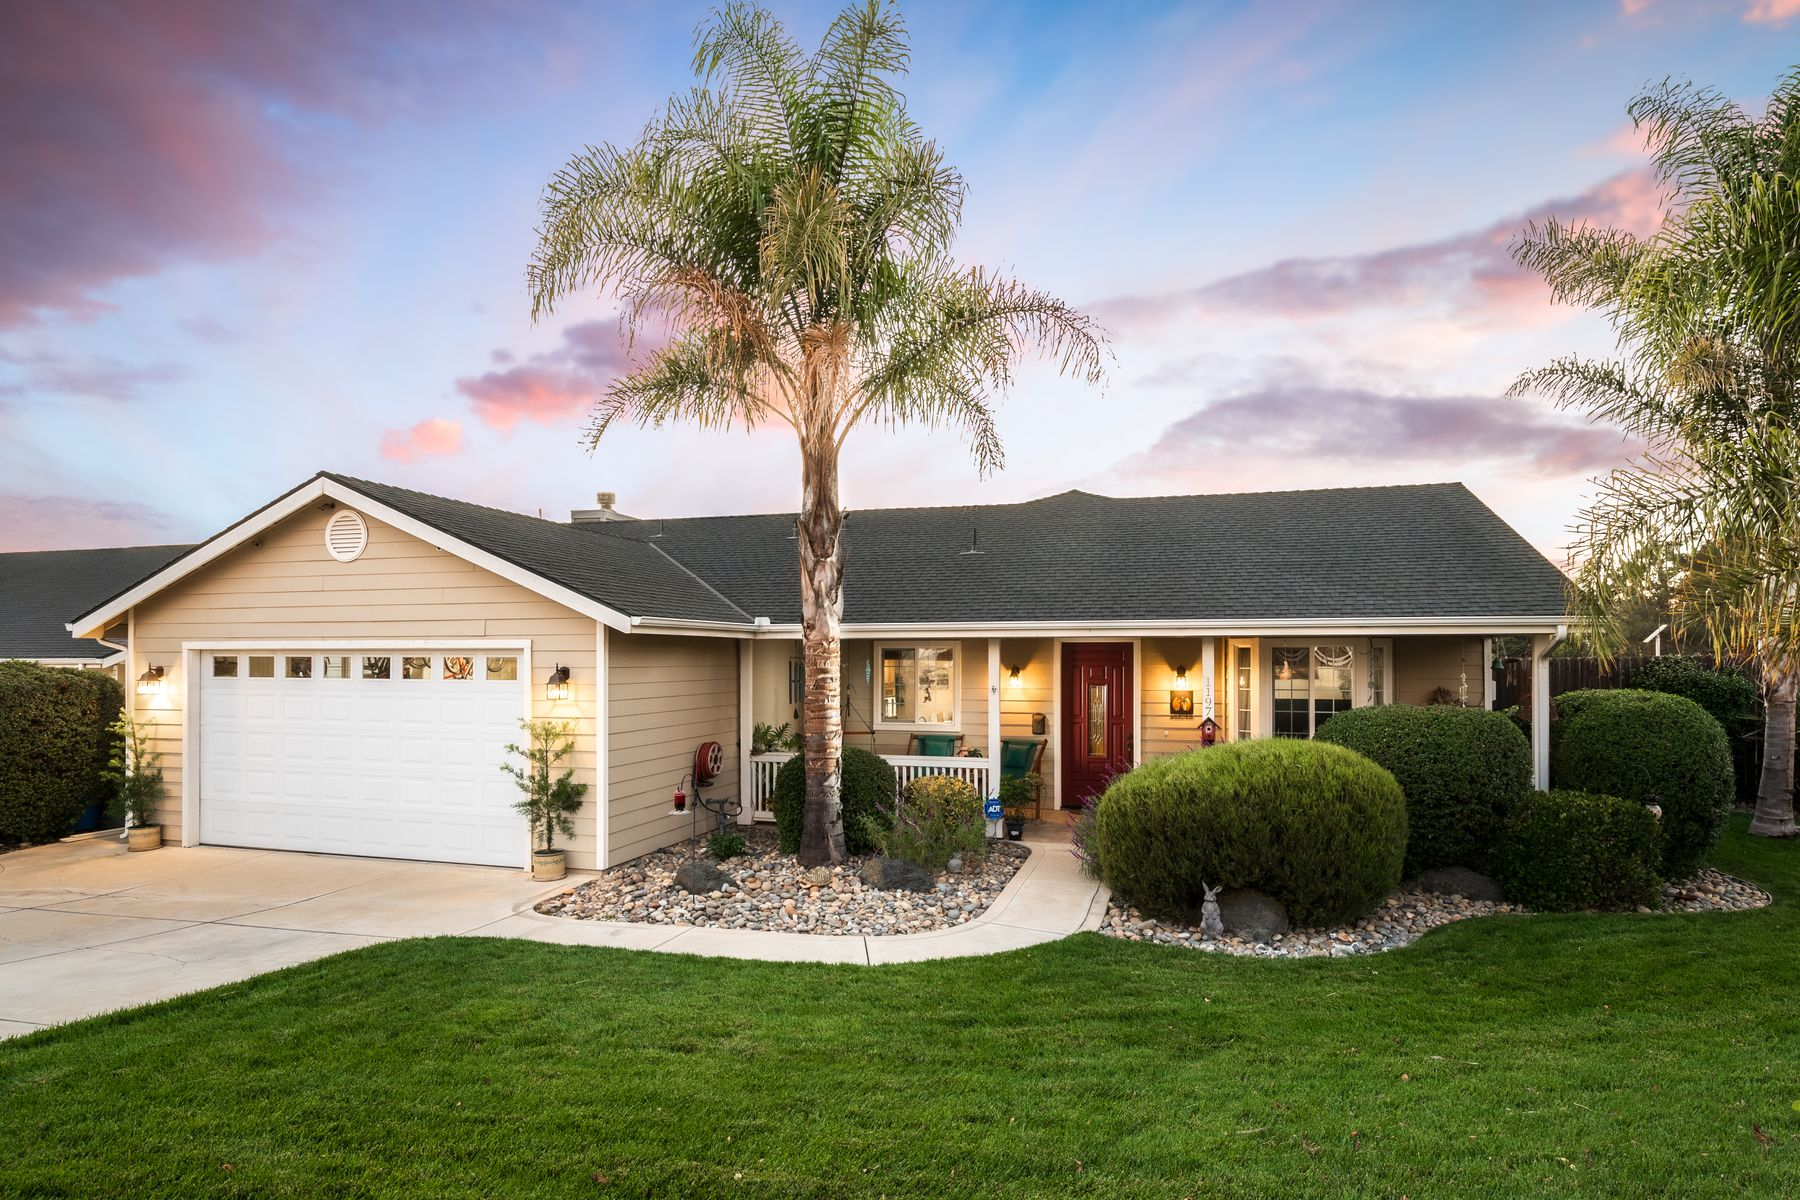 Single Family Homes for Sale at 1197 Tyndall Street Santa Ynez, California 93460 United States